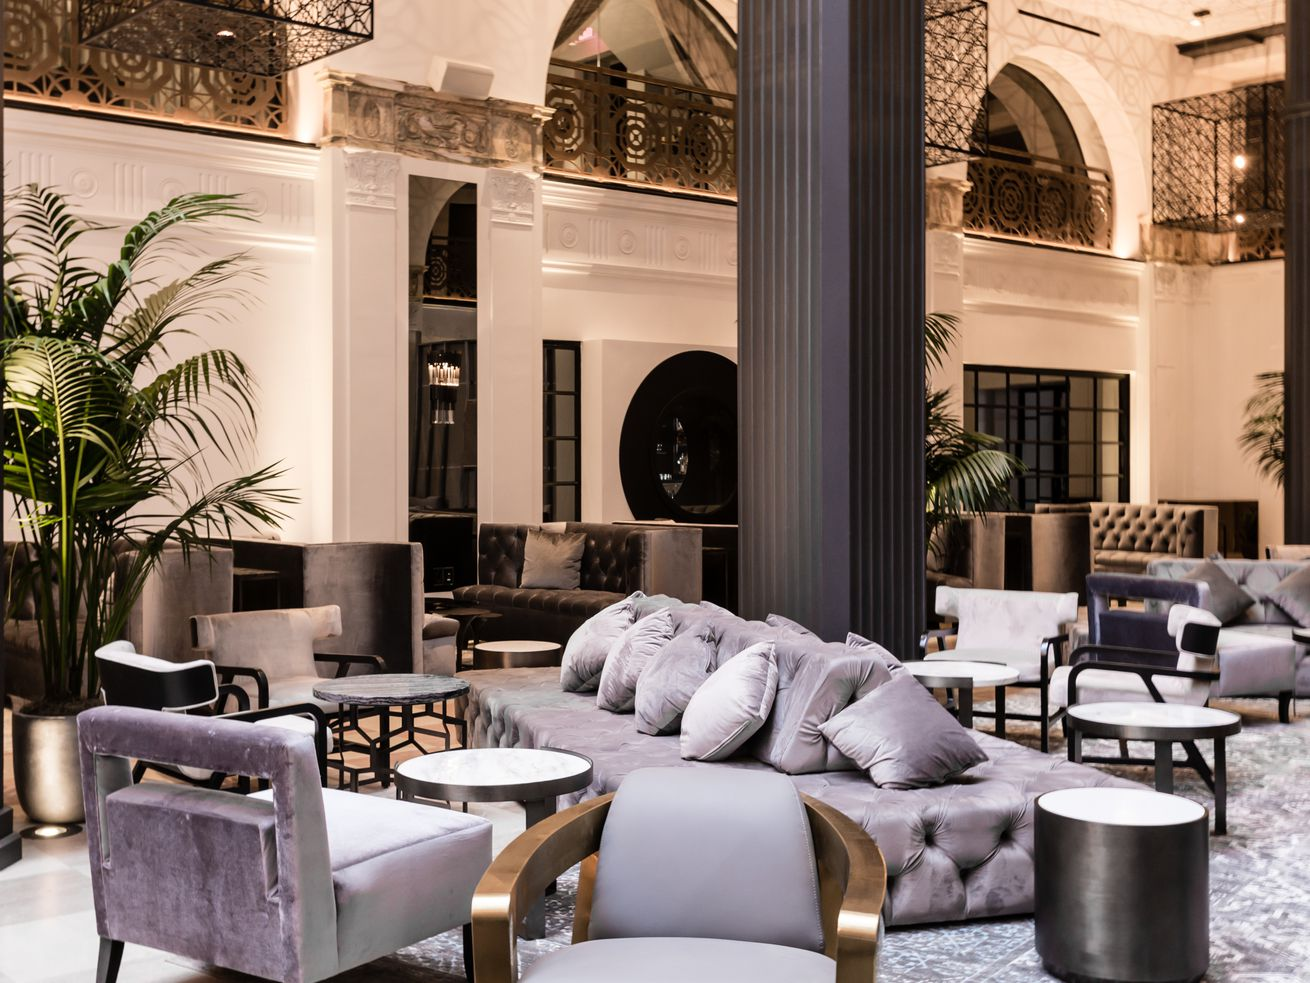 The lobby area of the renovated Mayfair Hotel